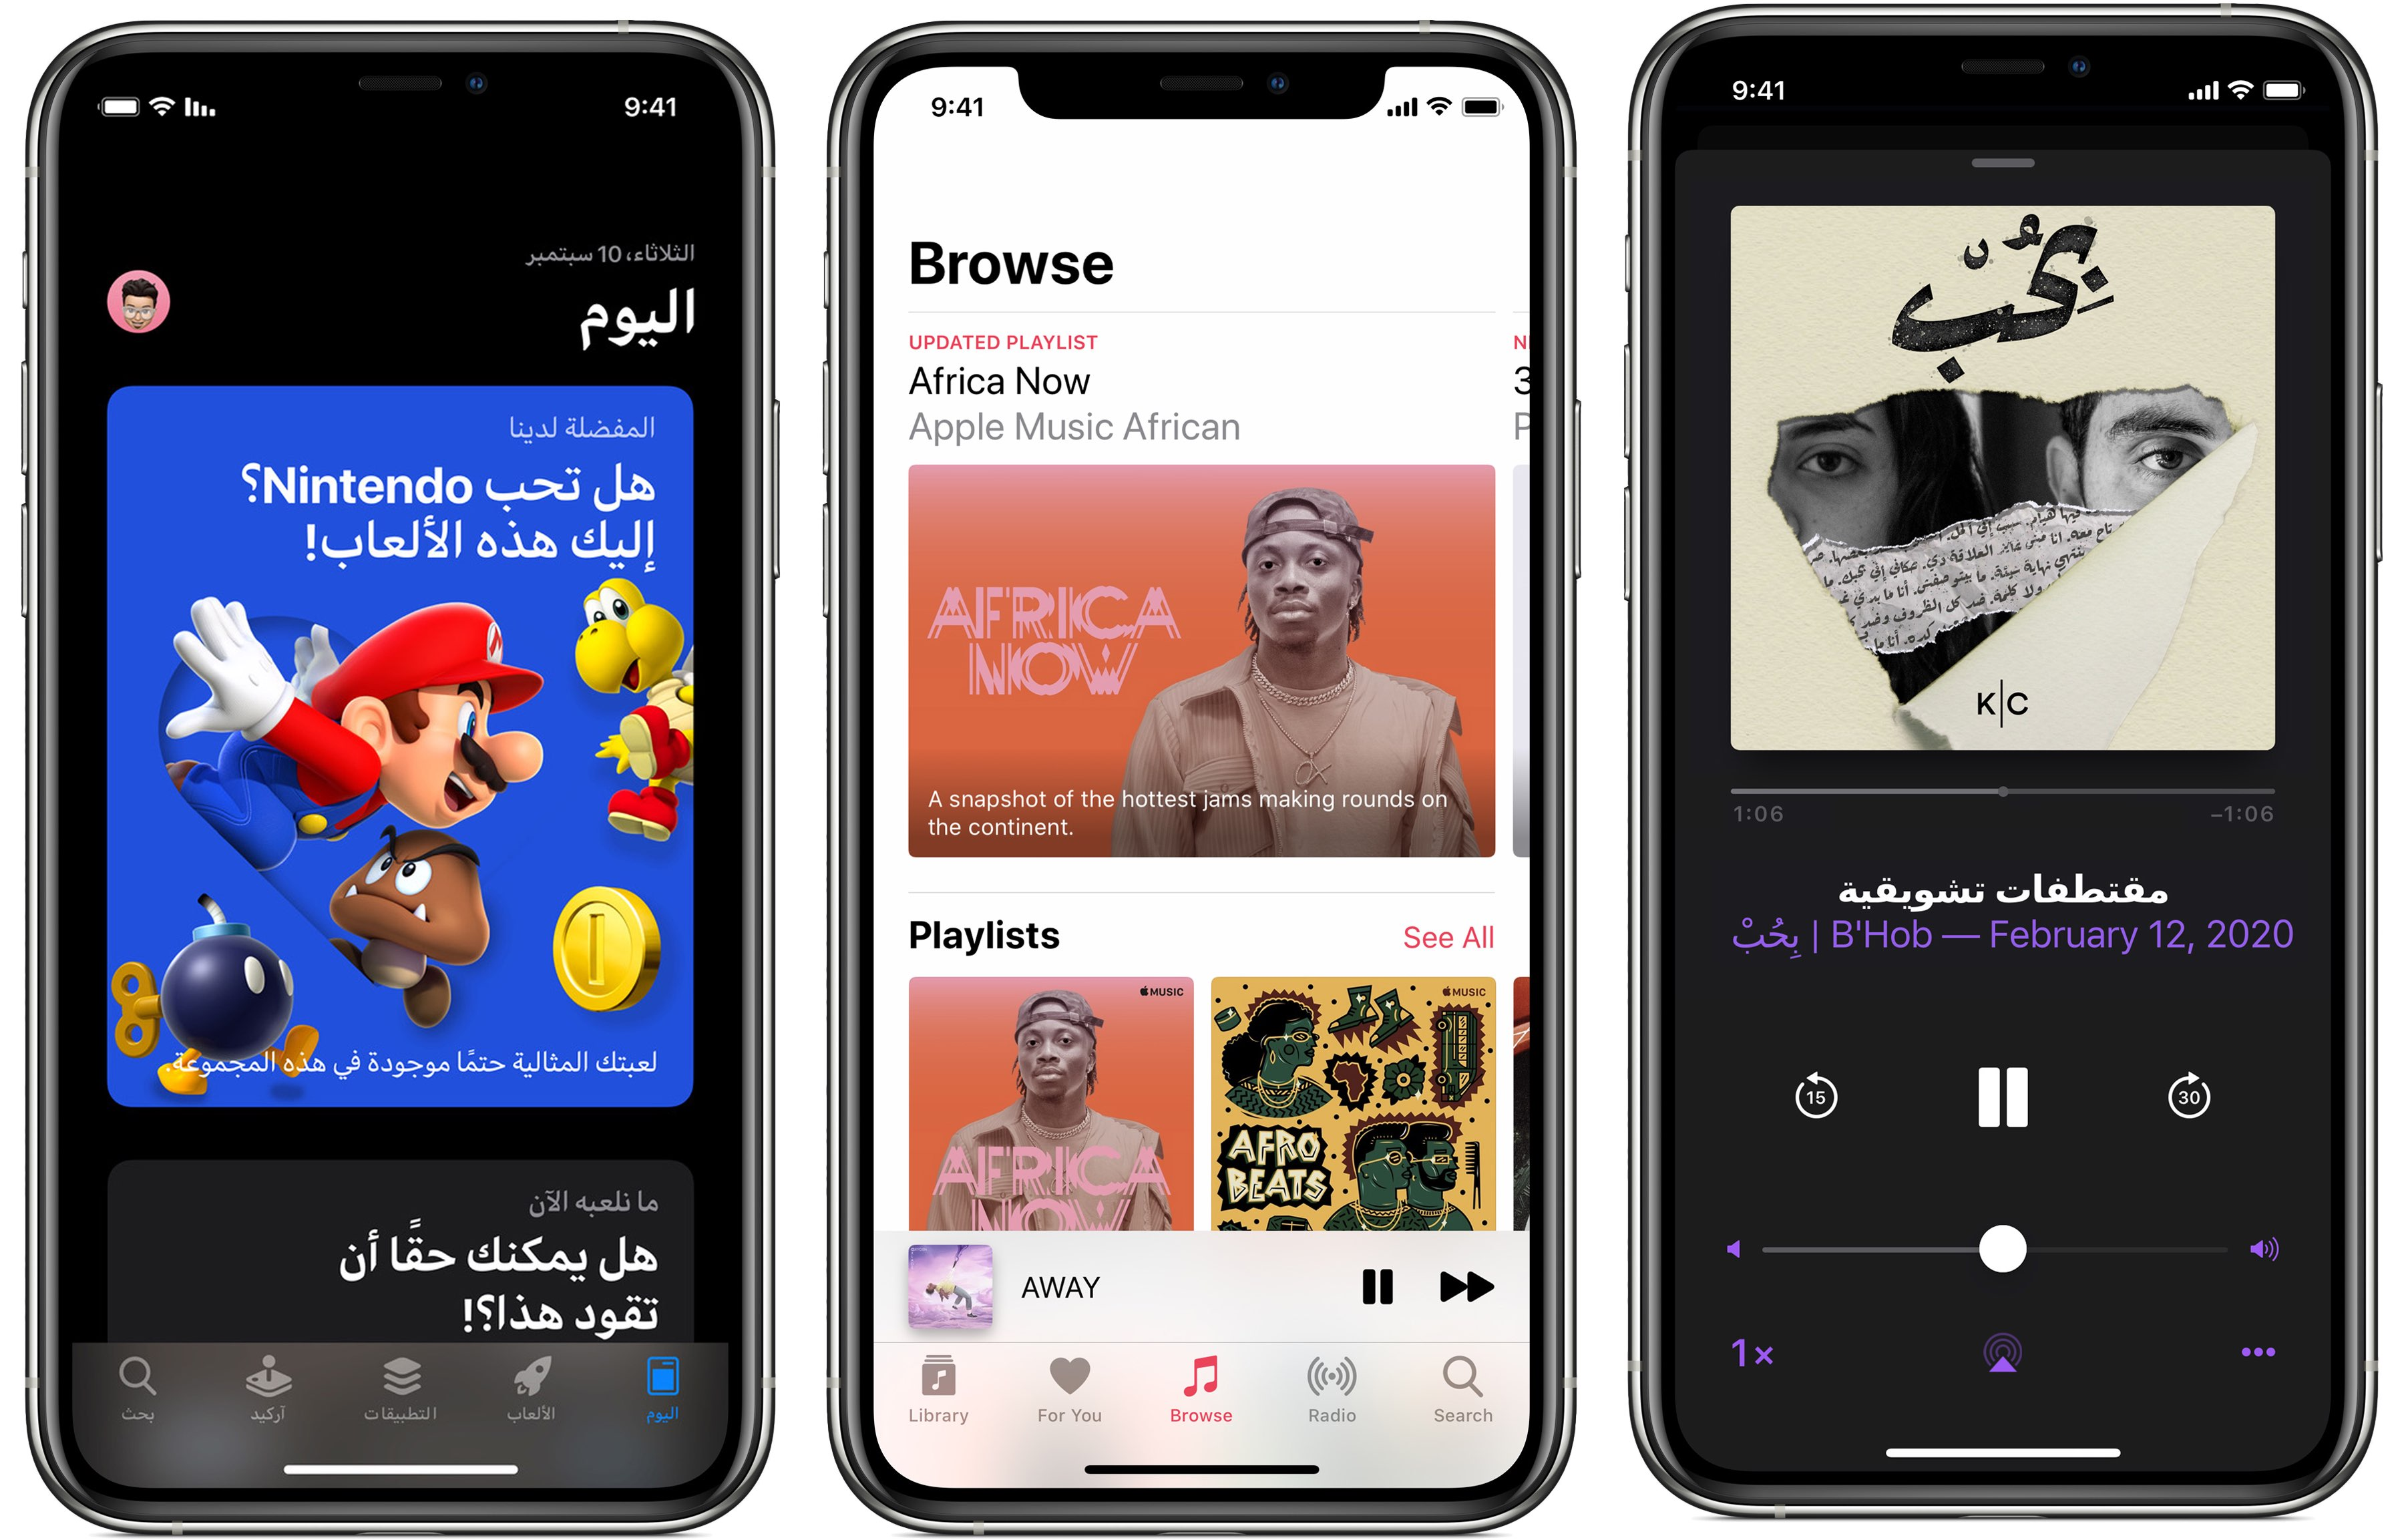 An image showing three iPhone 12 units with Apple Podcasts subscriptions highlighted on each